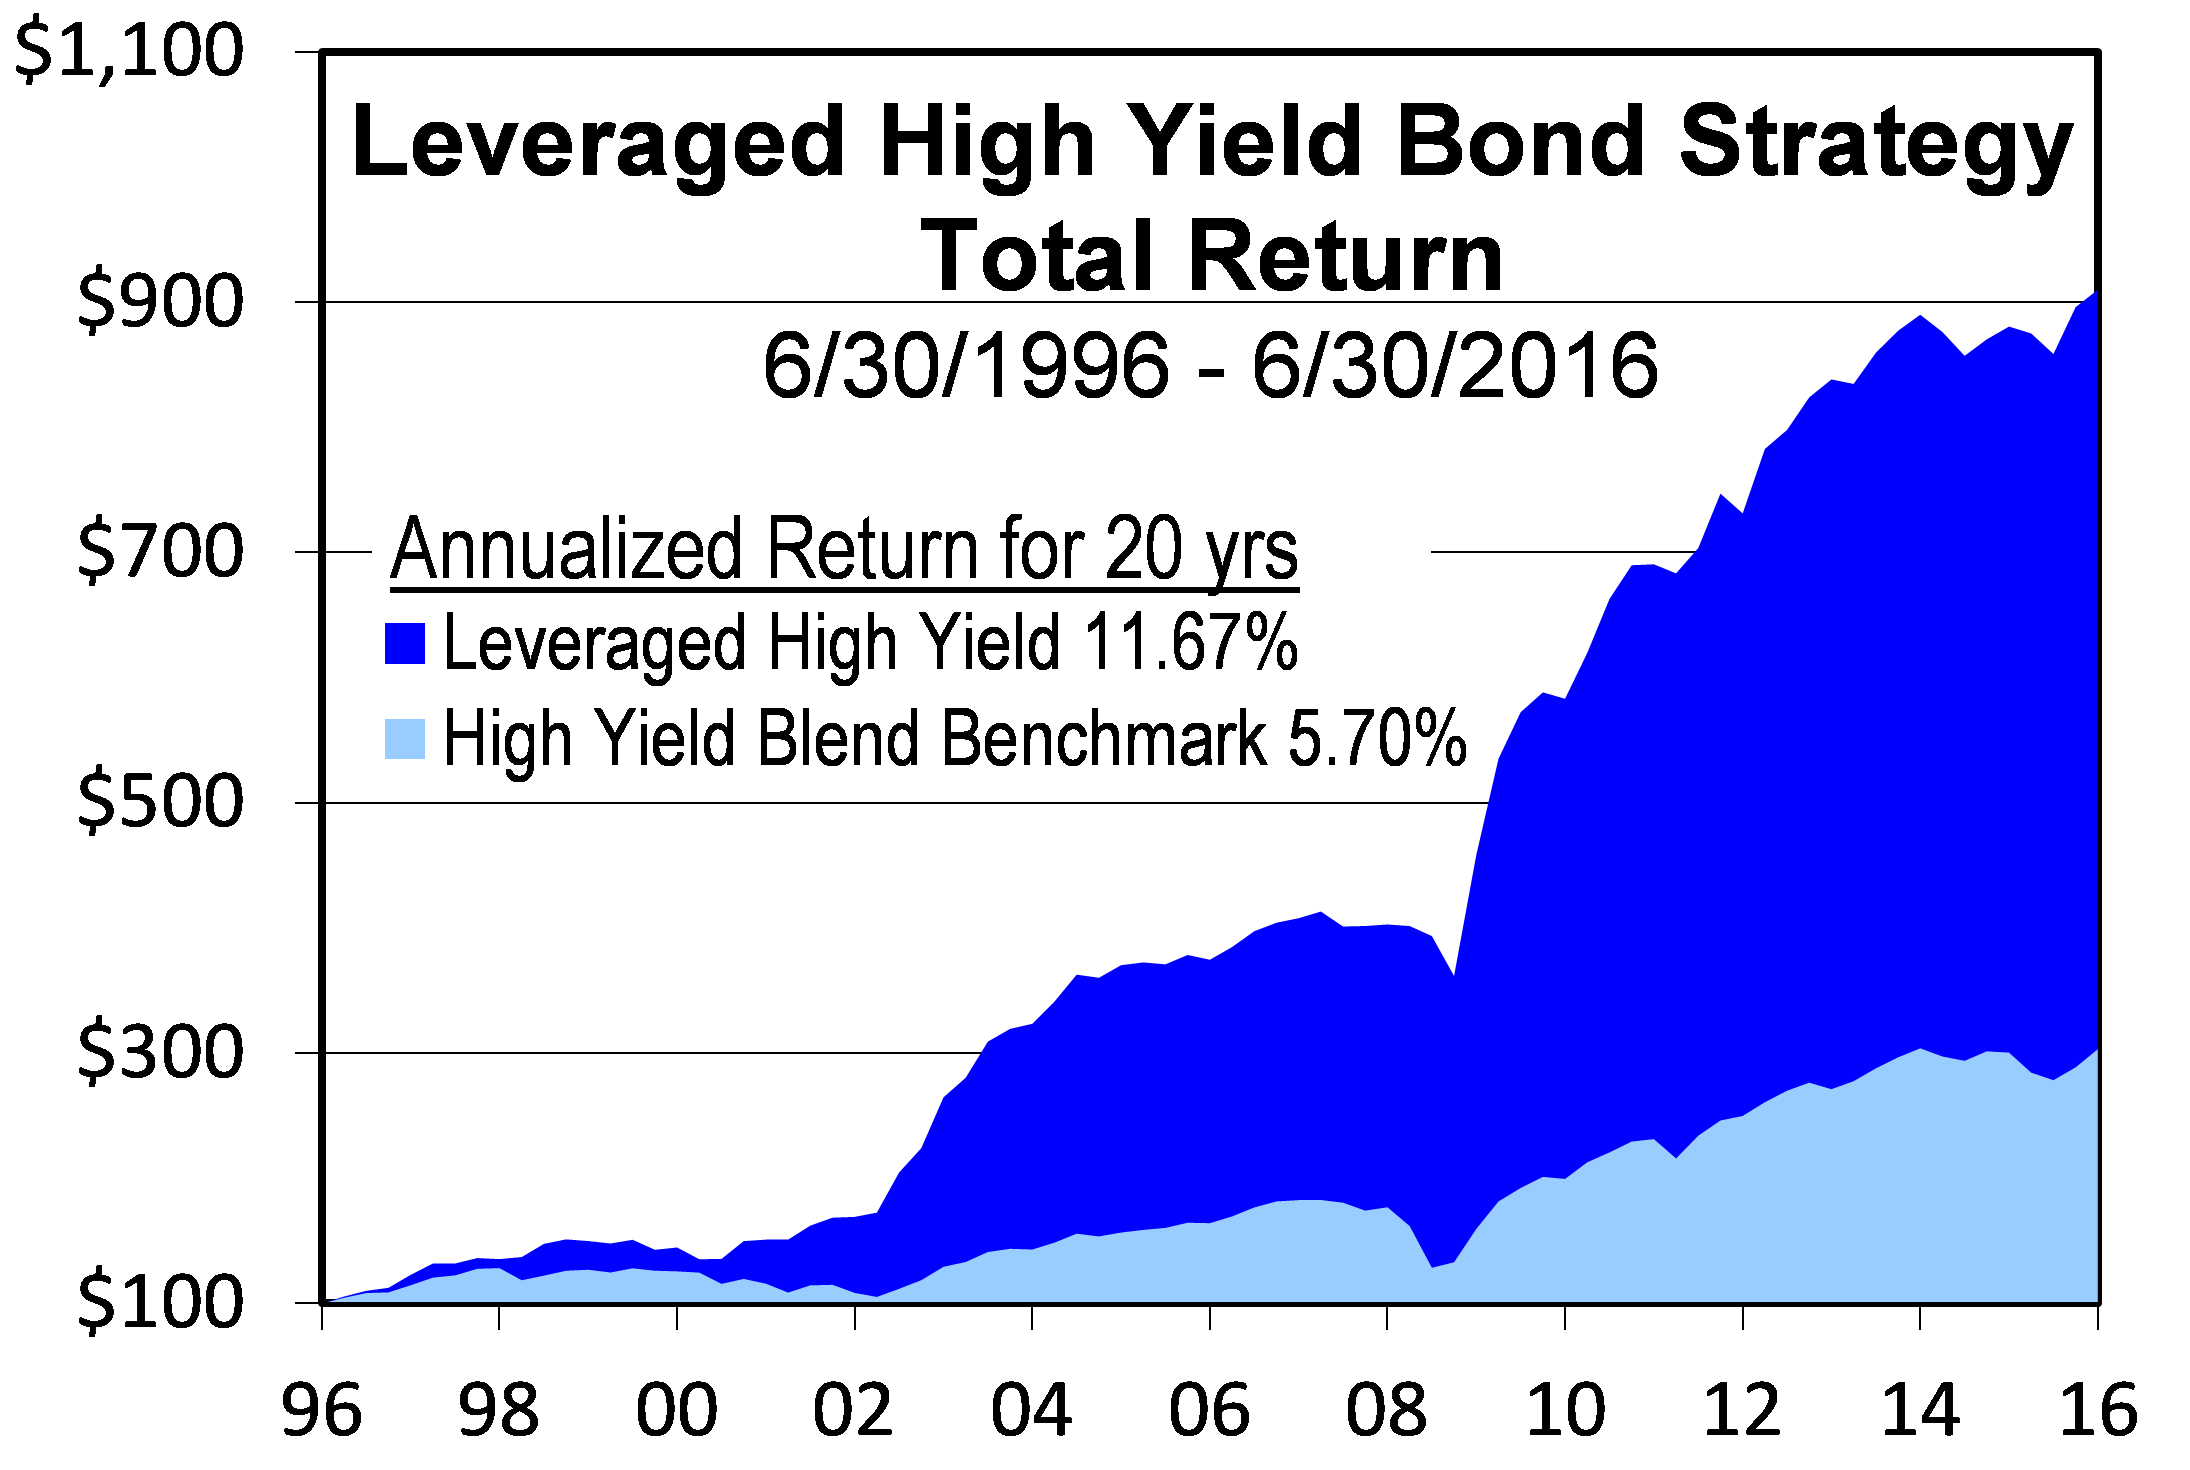 Leveraged High Yield